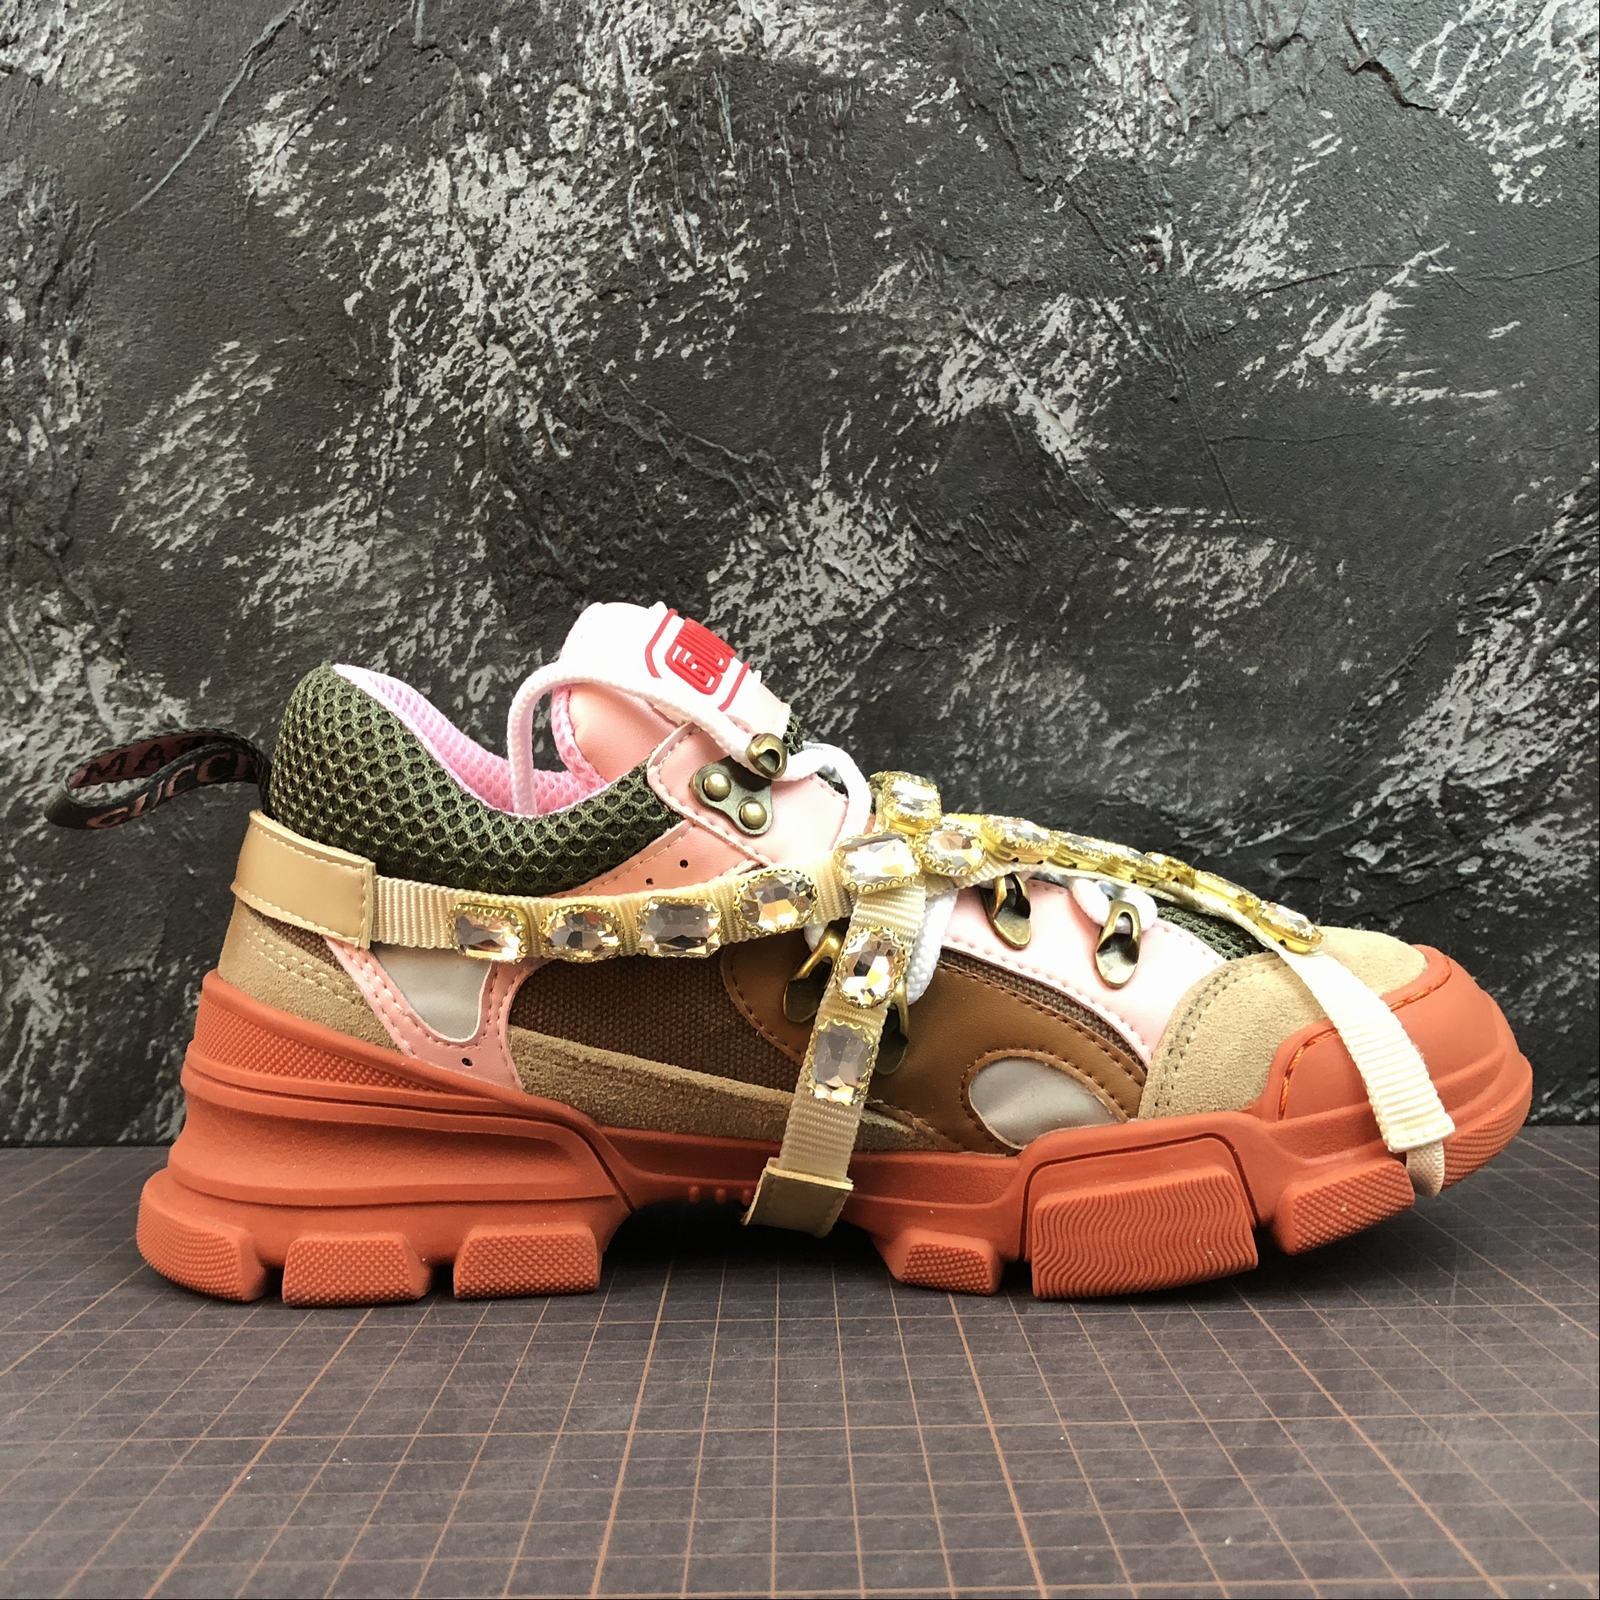 Женские кроссовки Gucci Flashtrek sneakers with removable crystals Orange - фото №2